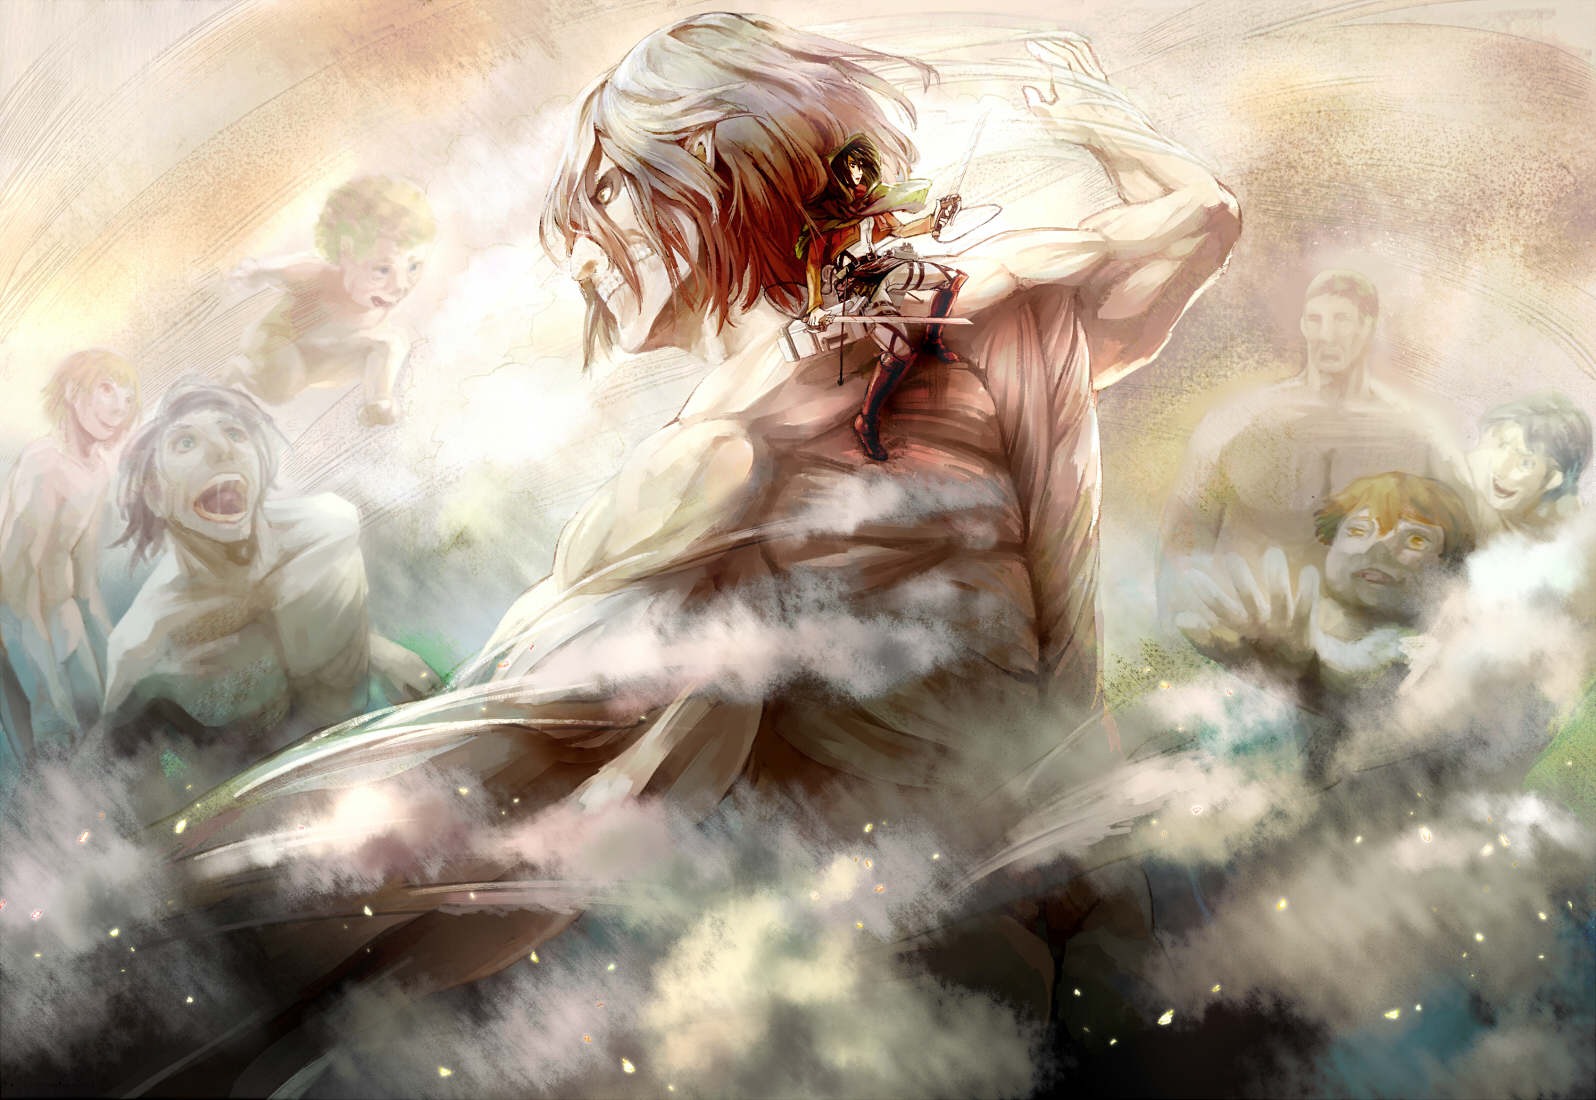 Attack On Titan Wallpaper and Background Image   1596x1100   ID:632842 - Wallpaper Abyss